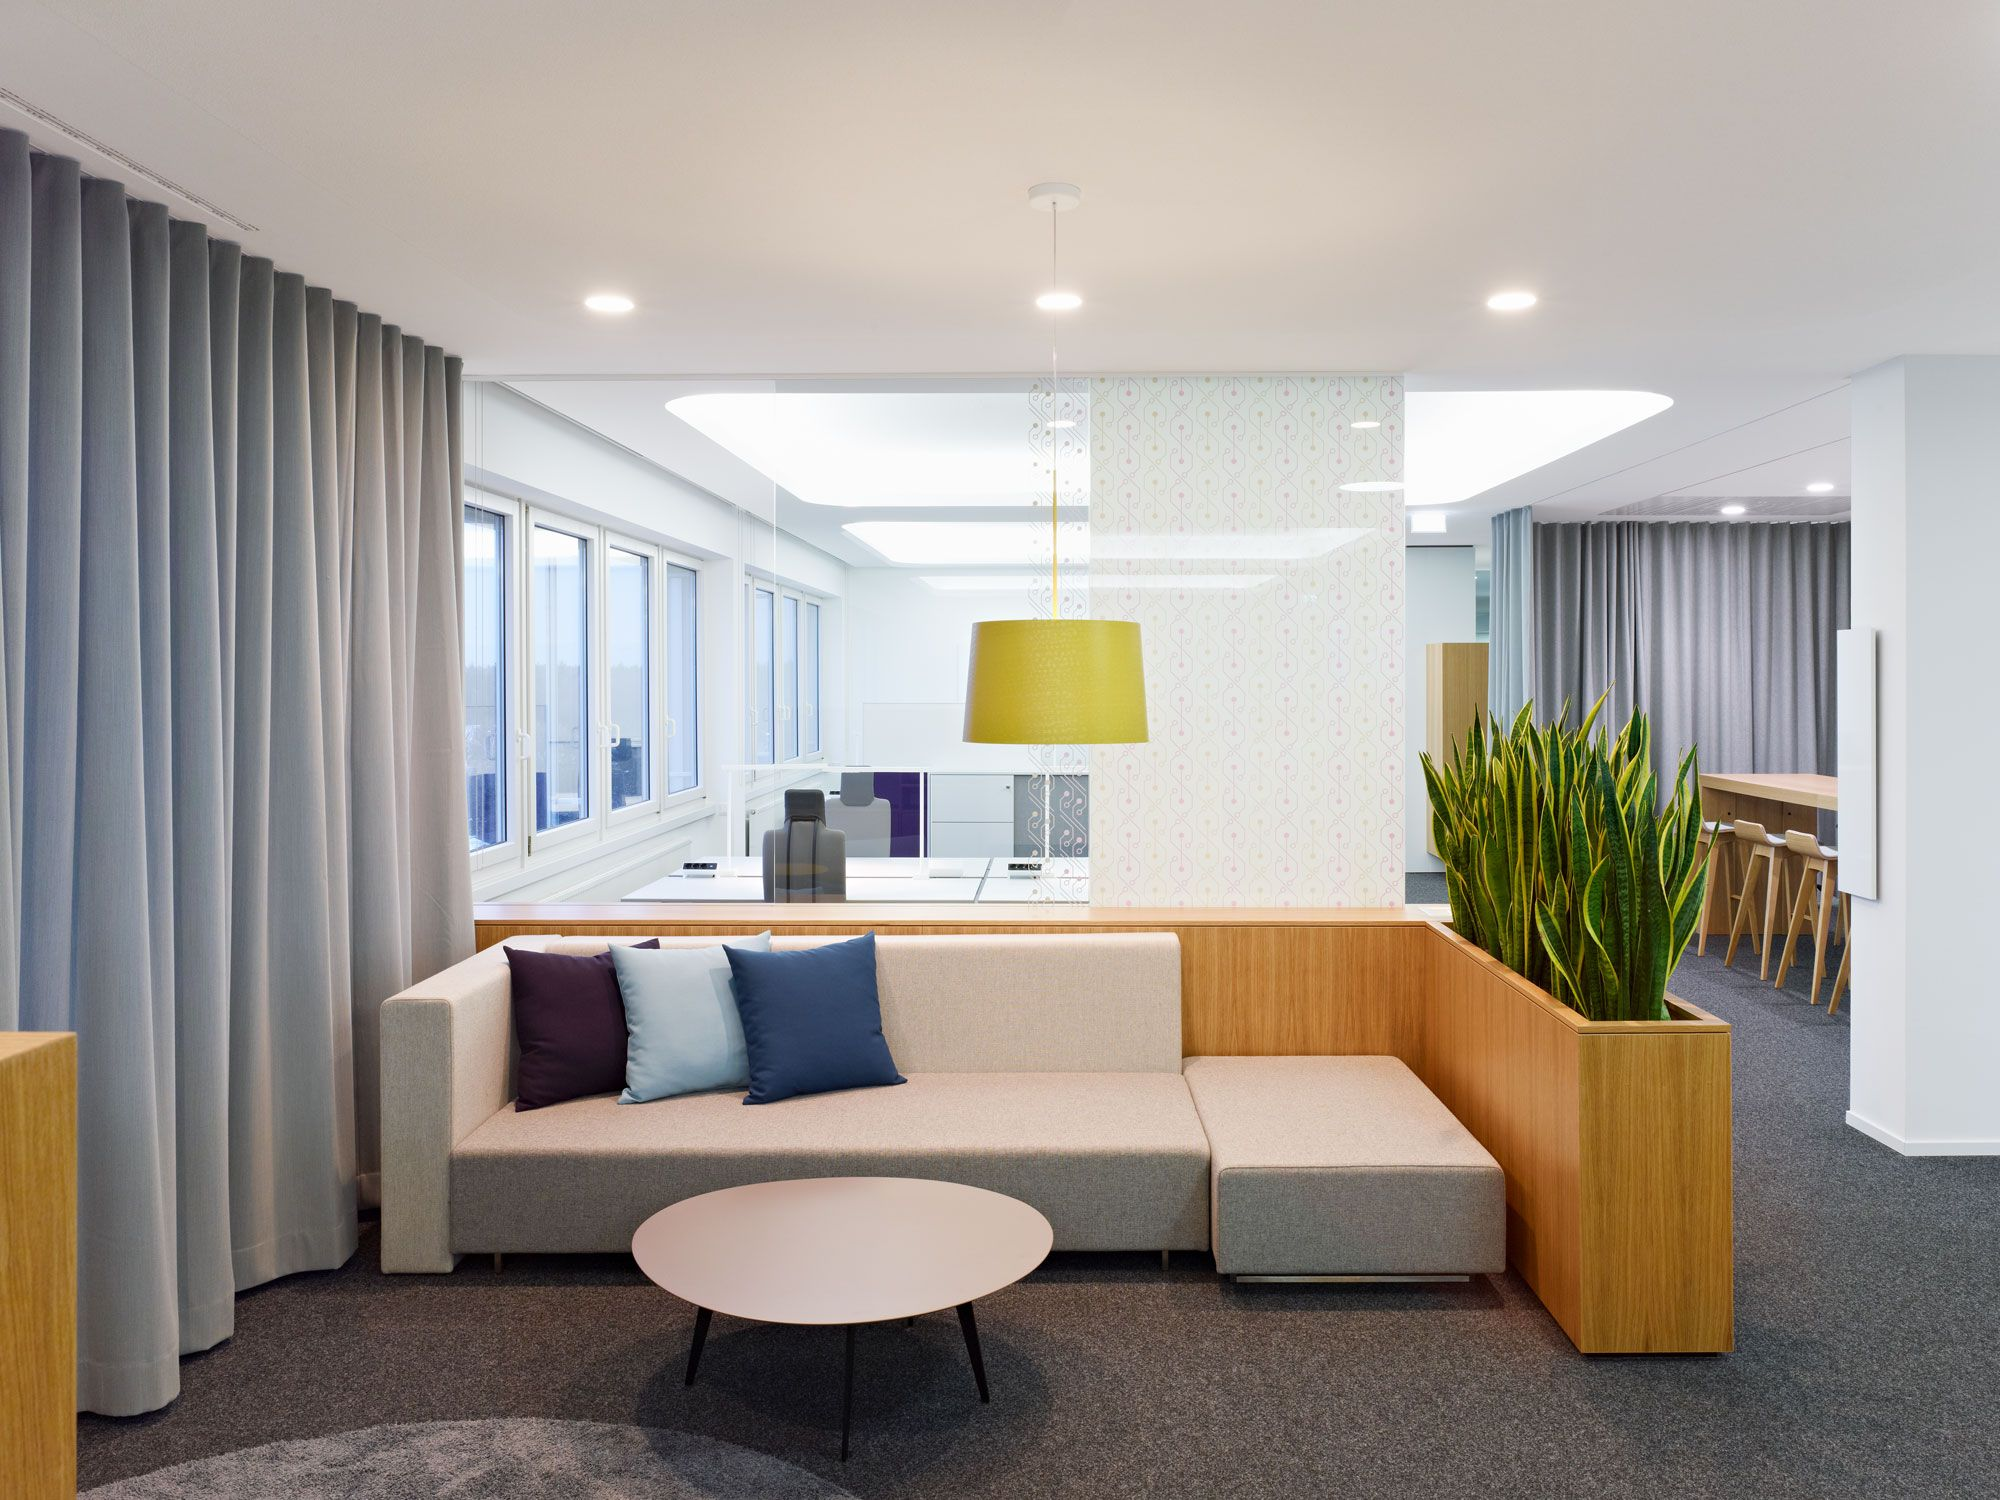 SAP-Office Space for Teams | Office Design | Office ...